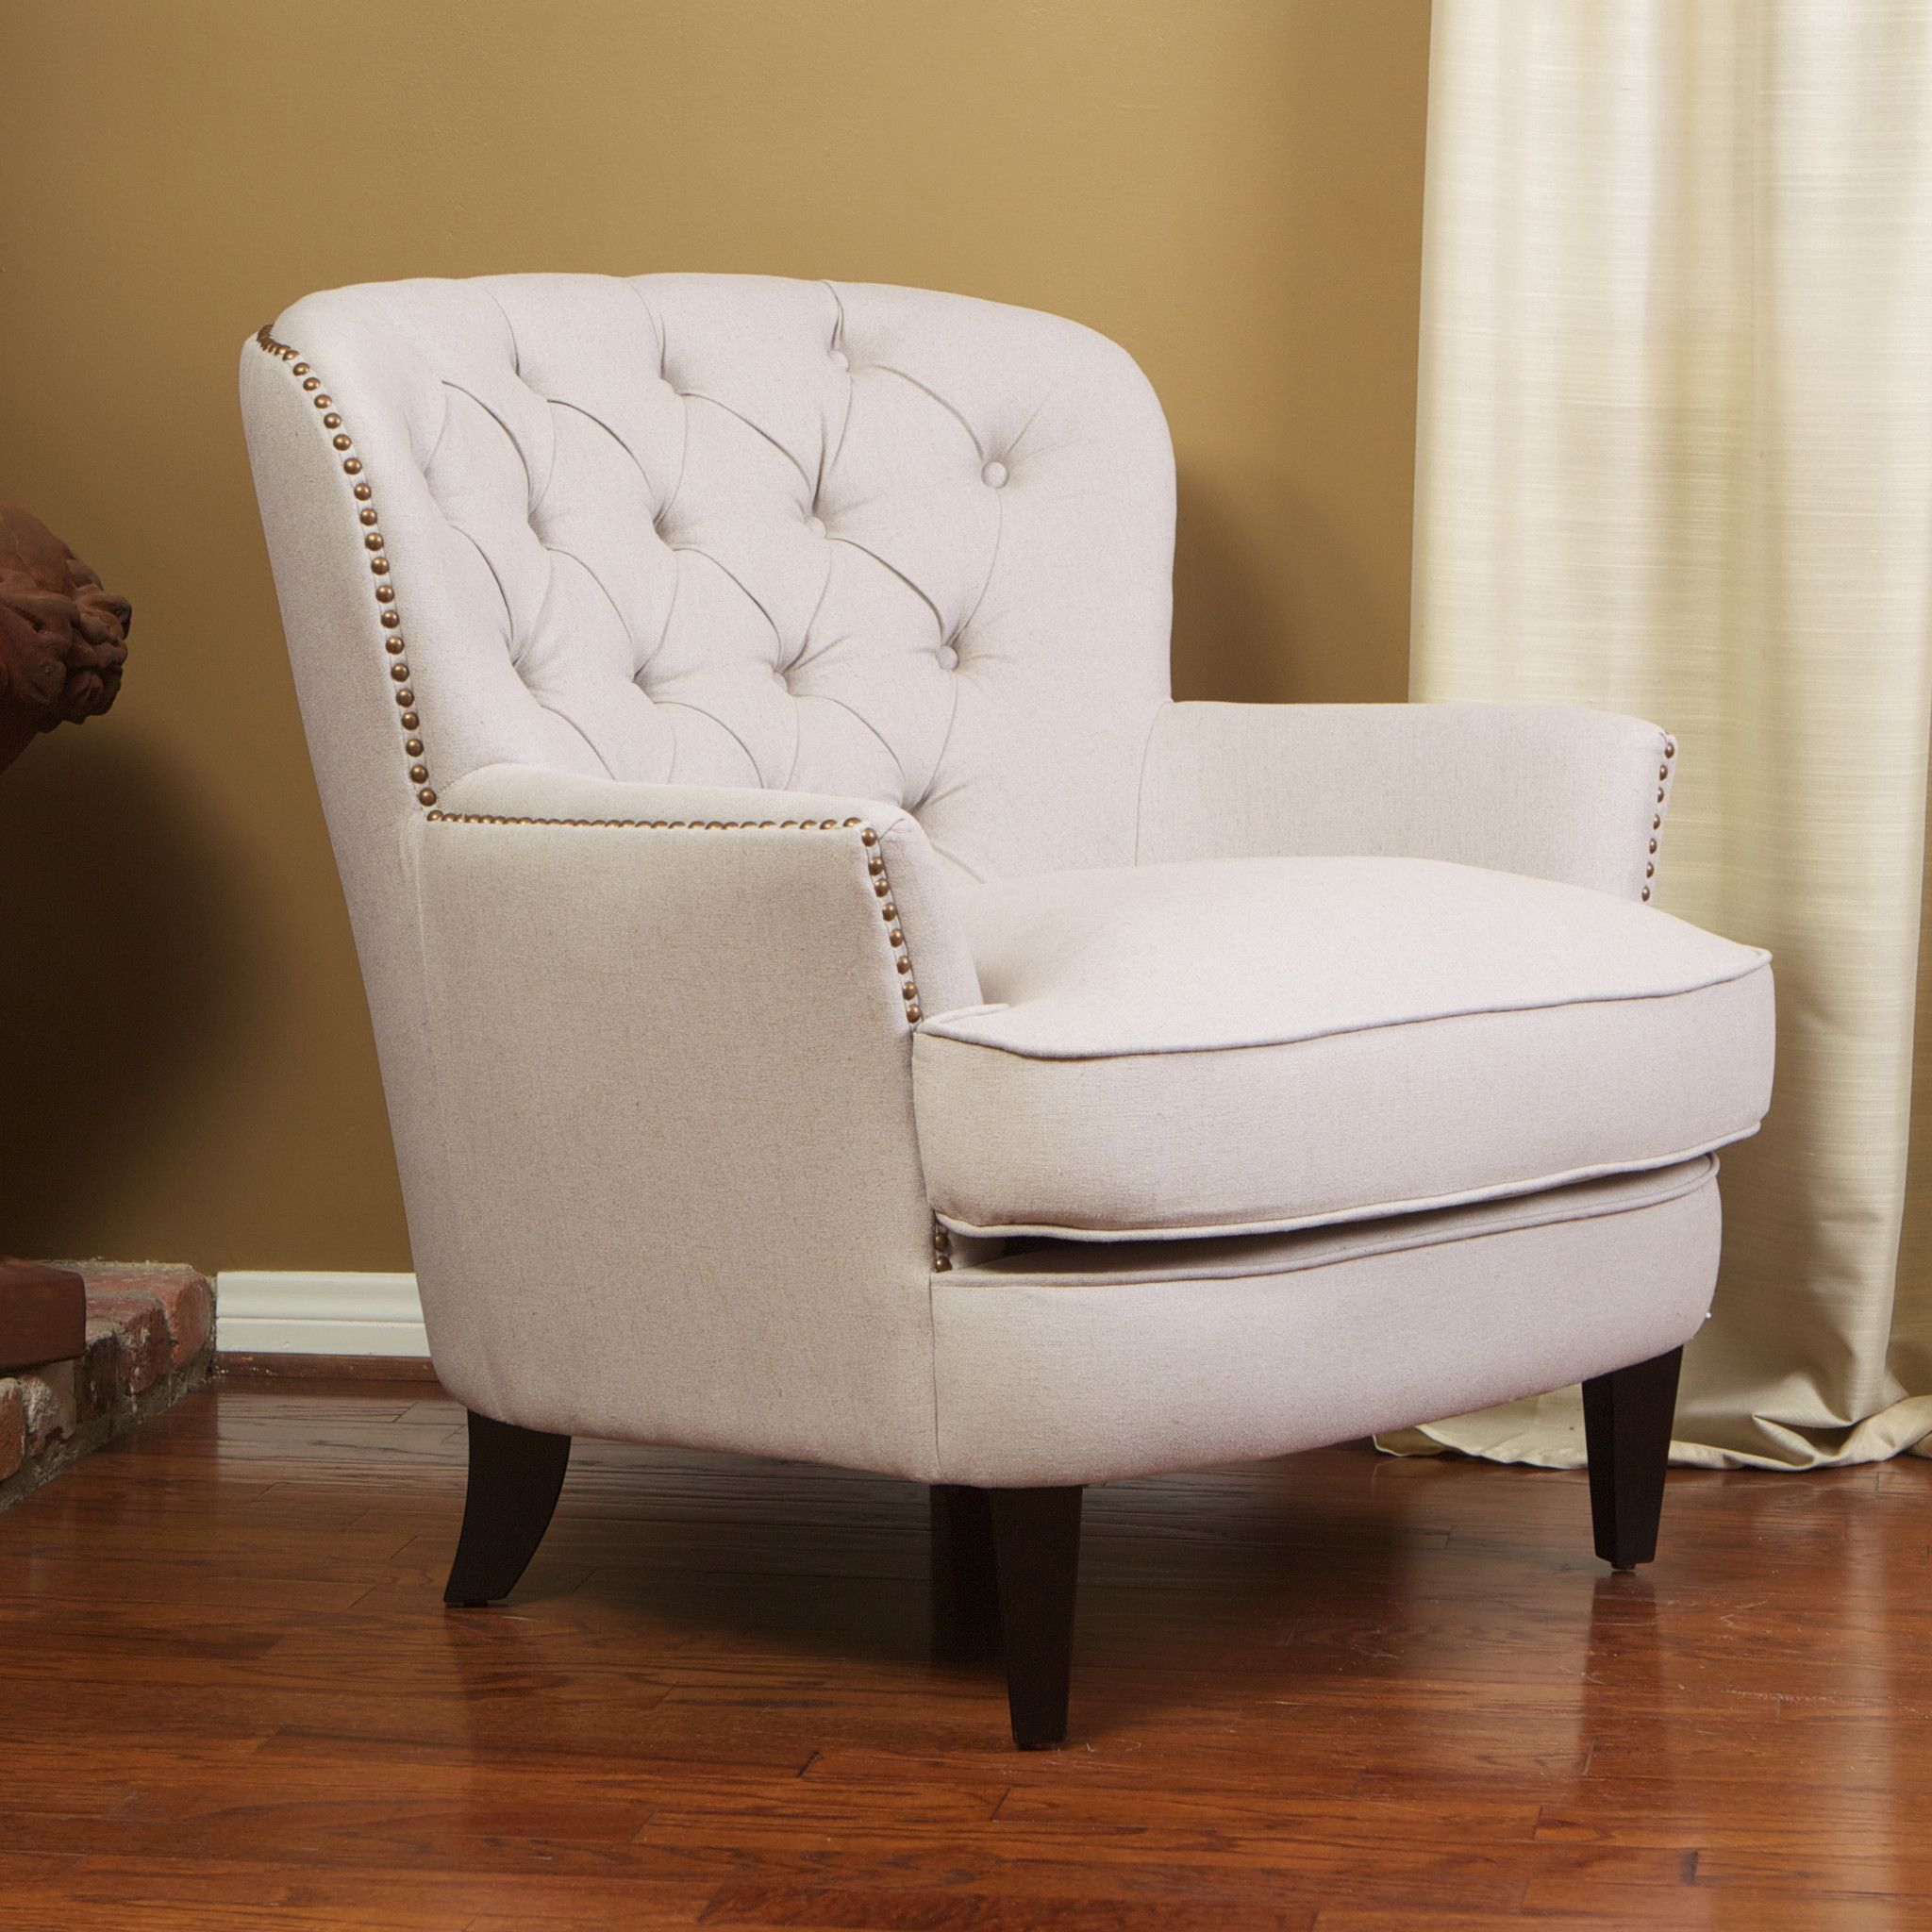 Tafton Club Chair How Much Is A Salon The Alfred Royal Vintage Design Upholstered Arm